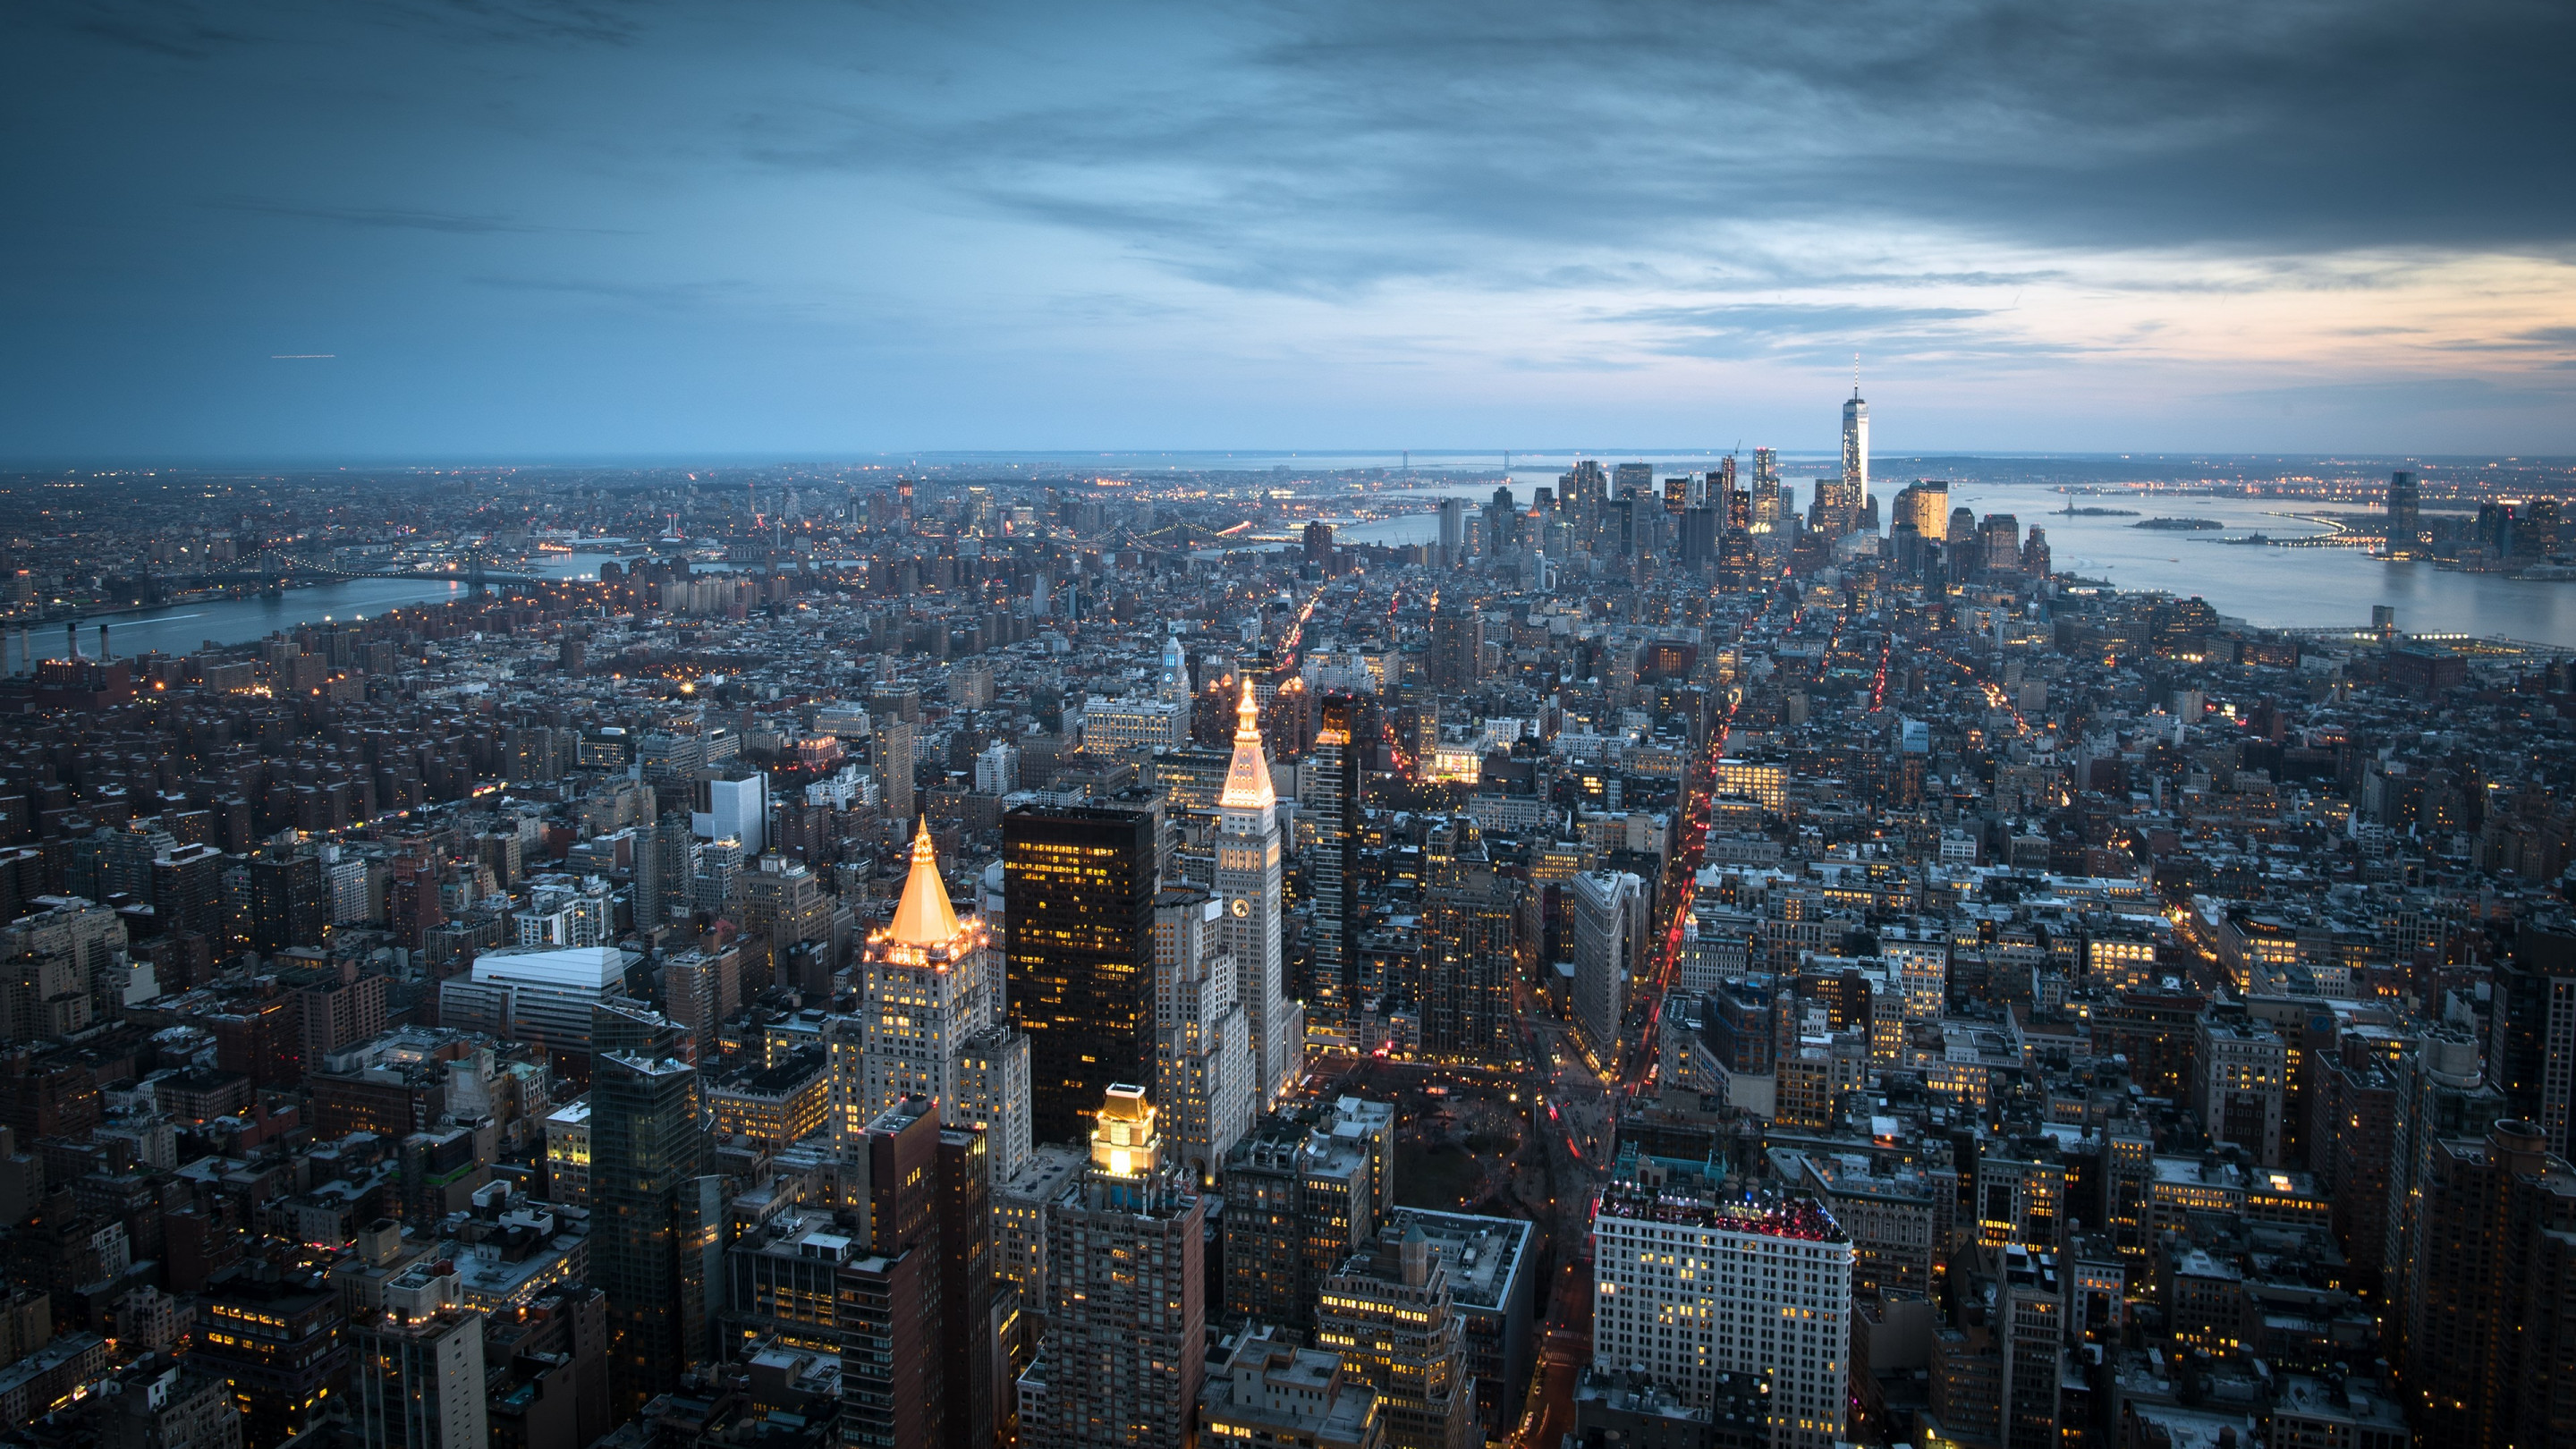 Top view over Manhattan from Empire State wallpaper 2880x1620